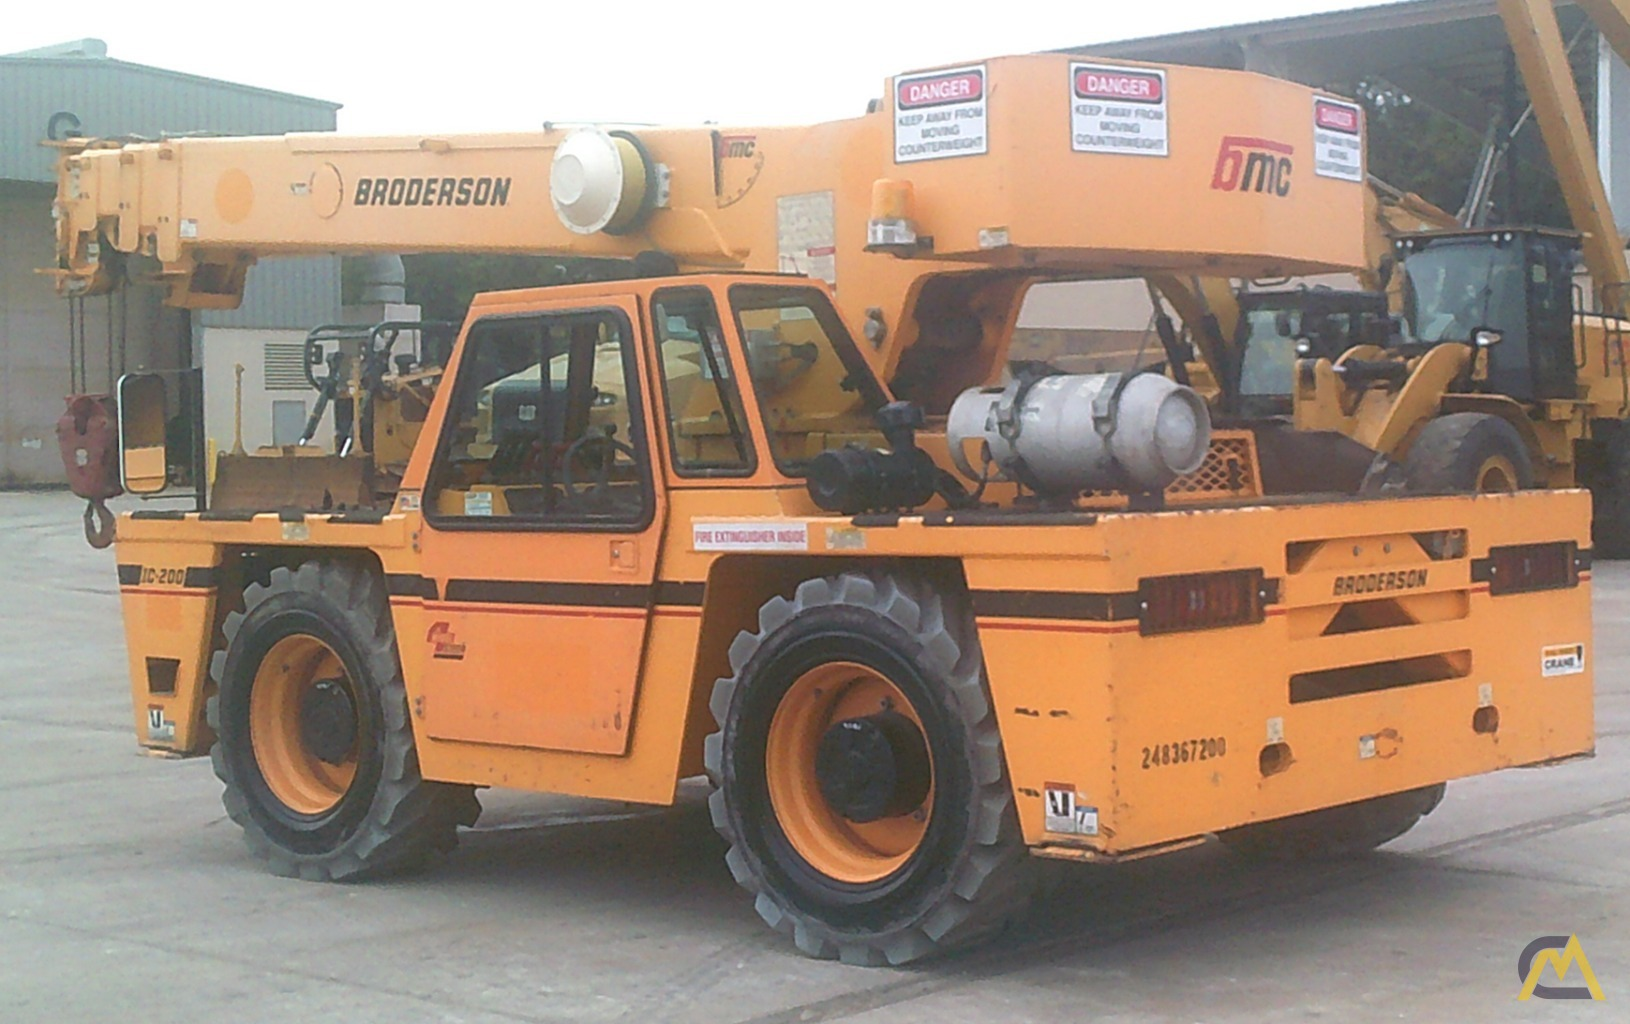 Broderson IC-200-3H 15-Ton Industrial Carry Deck Crane 0